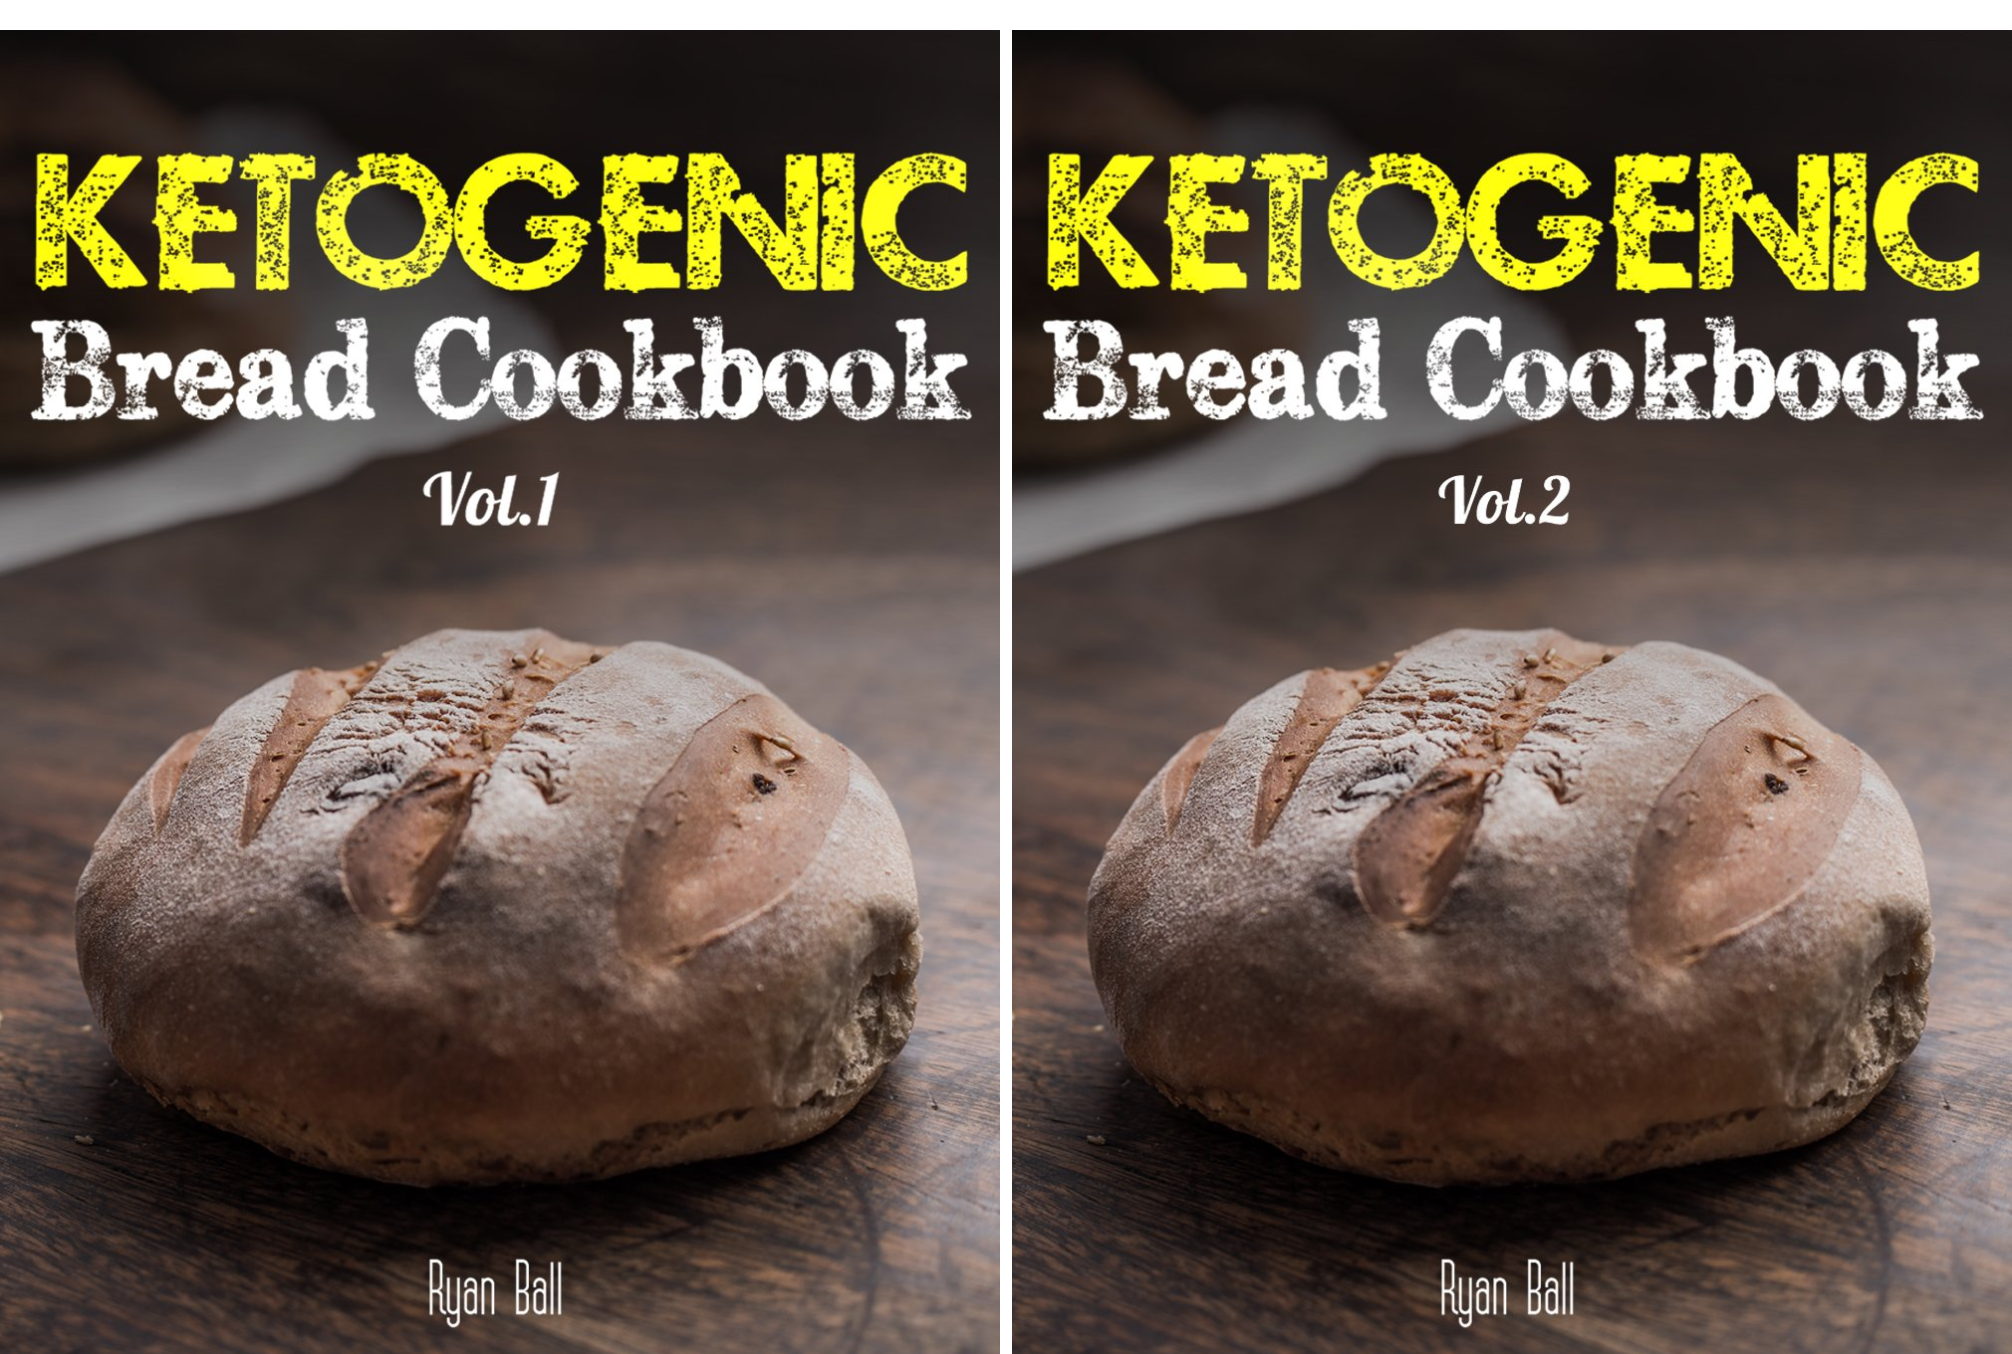 Ketogenic Diet, Paleo Diet, Low Carb Cookbook, Gluten Free, Weight Loss (2 Book Series)